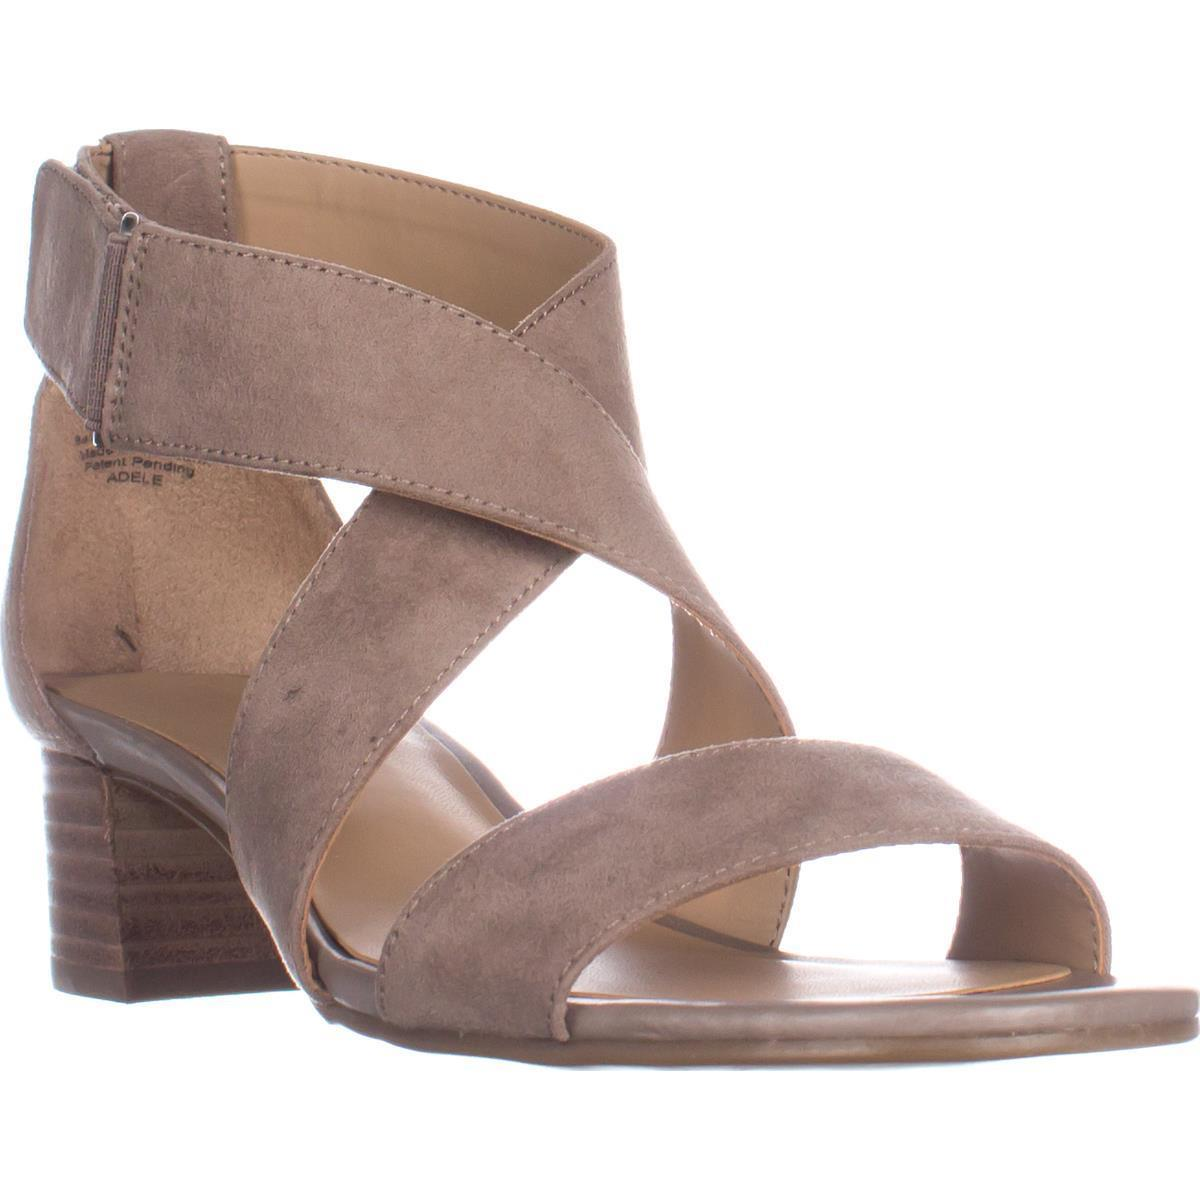 Womens Naturalizer Adele Ankle Strap Sandals, Doe by Naturalizer